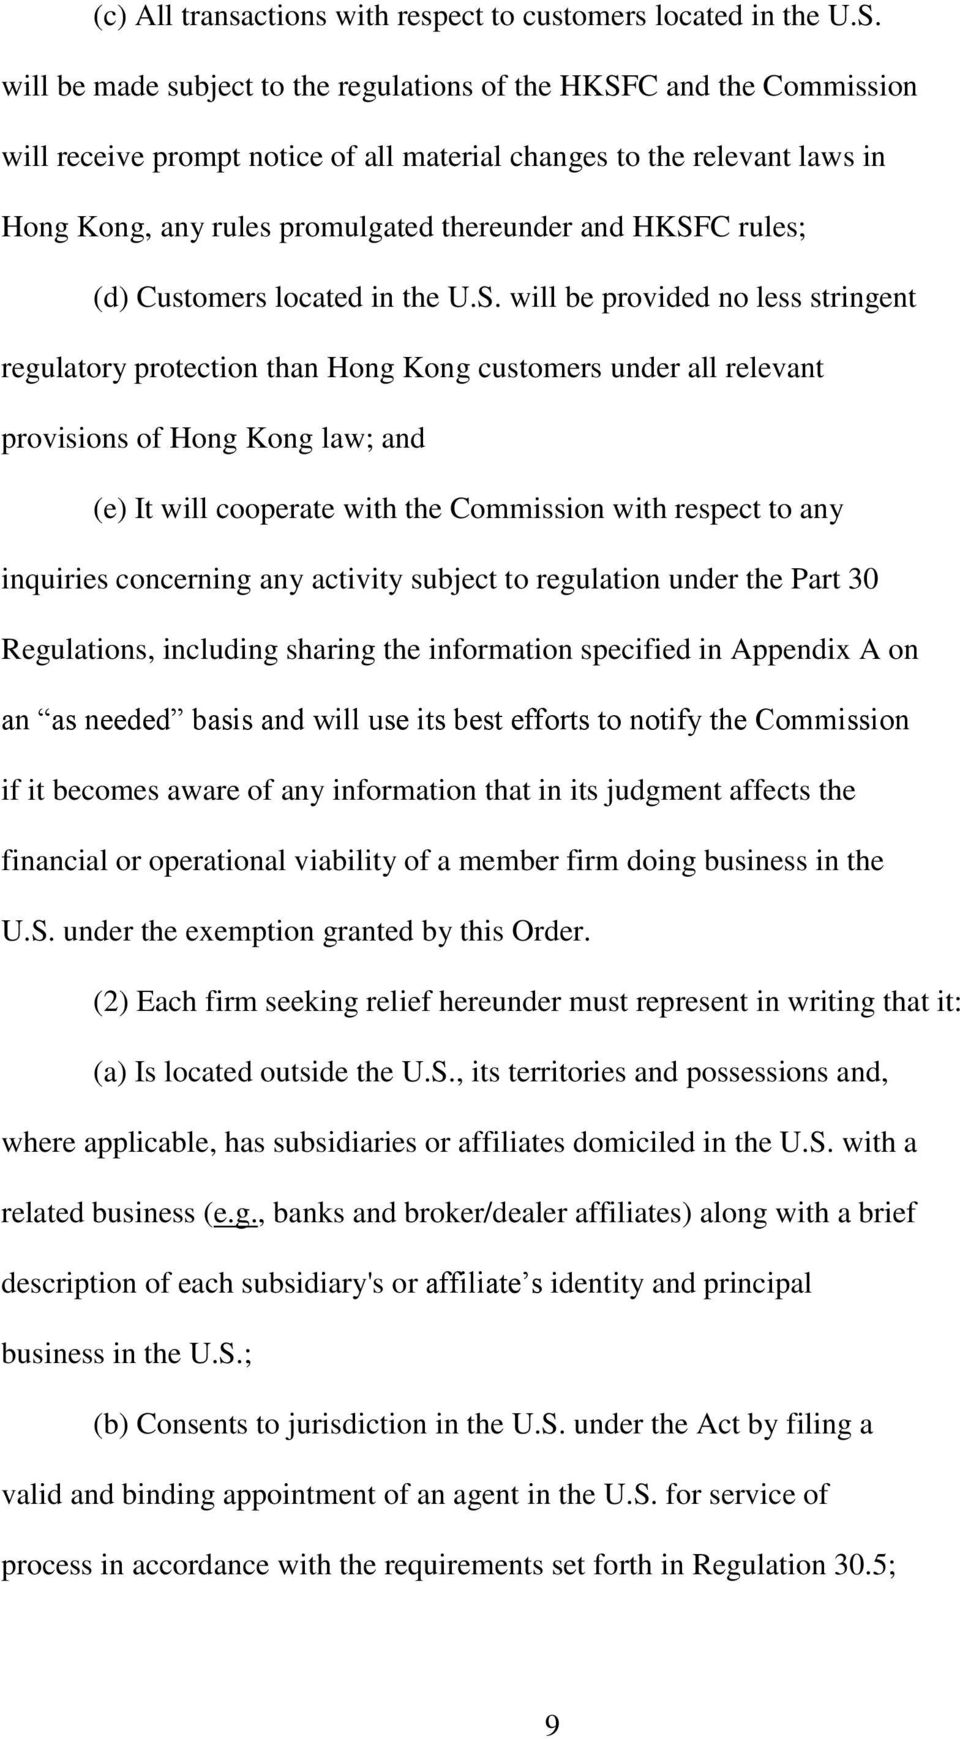 HKSFC rules; (d) Customers located in the U.S. will be provided no less stringent regulatory protection than Hong Kong customers under all relevant provisions of Hong Kong law; and (e) It will